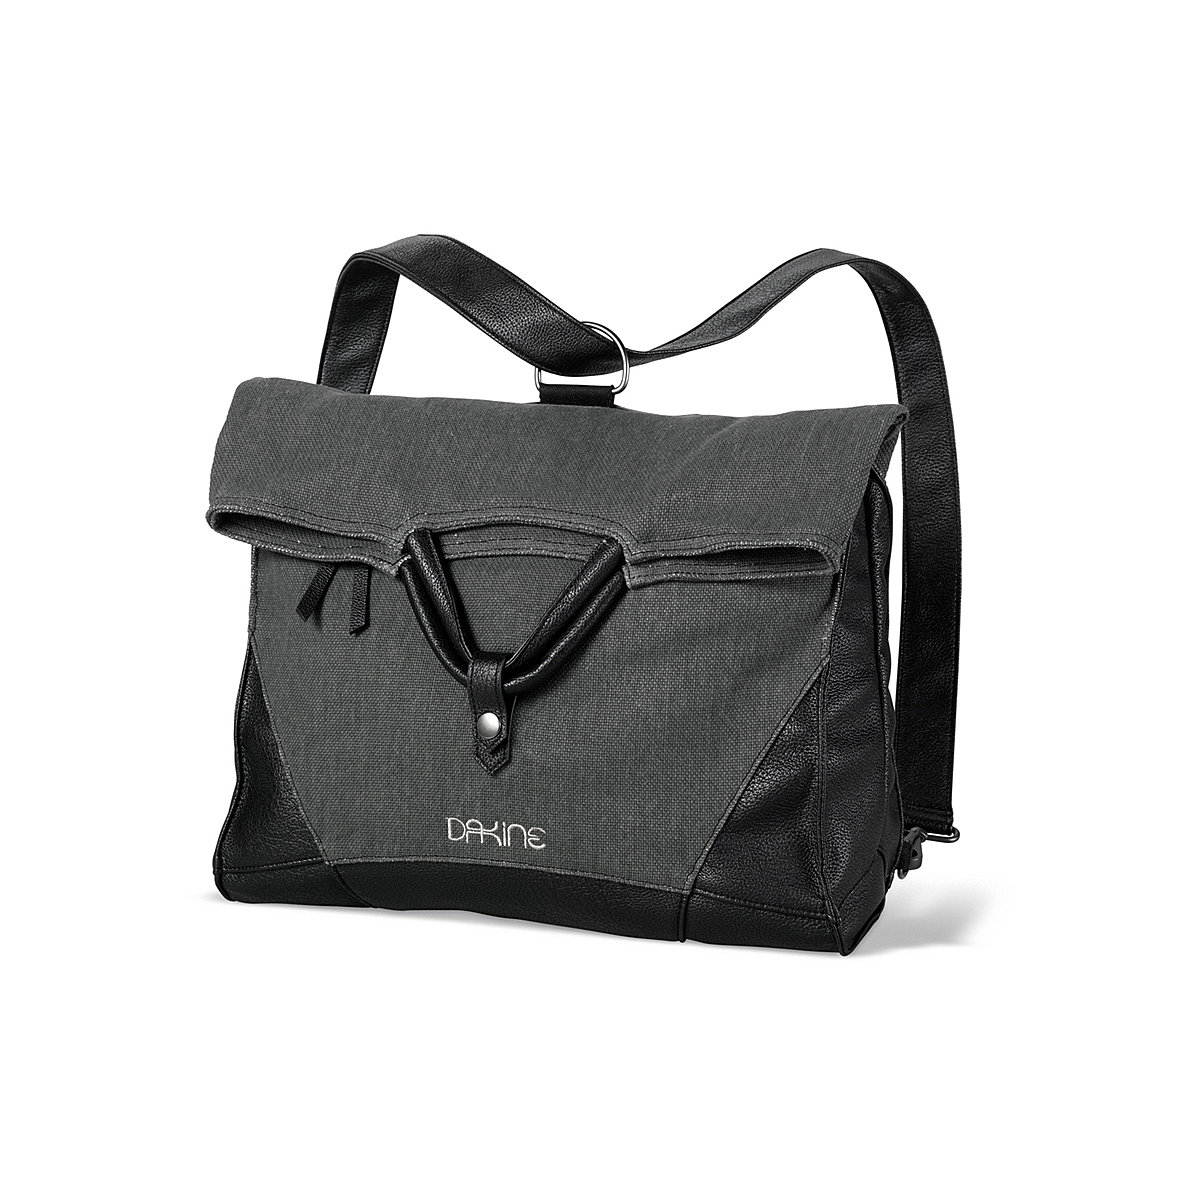 dakine creekside handtasche schultertasche und rucksack in einem black. Black Bedroom Furniture Sets. Home Design Ideas